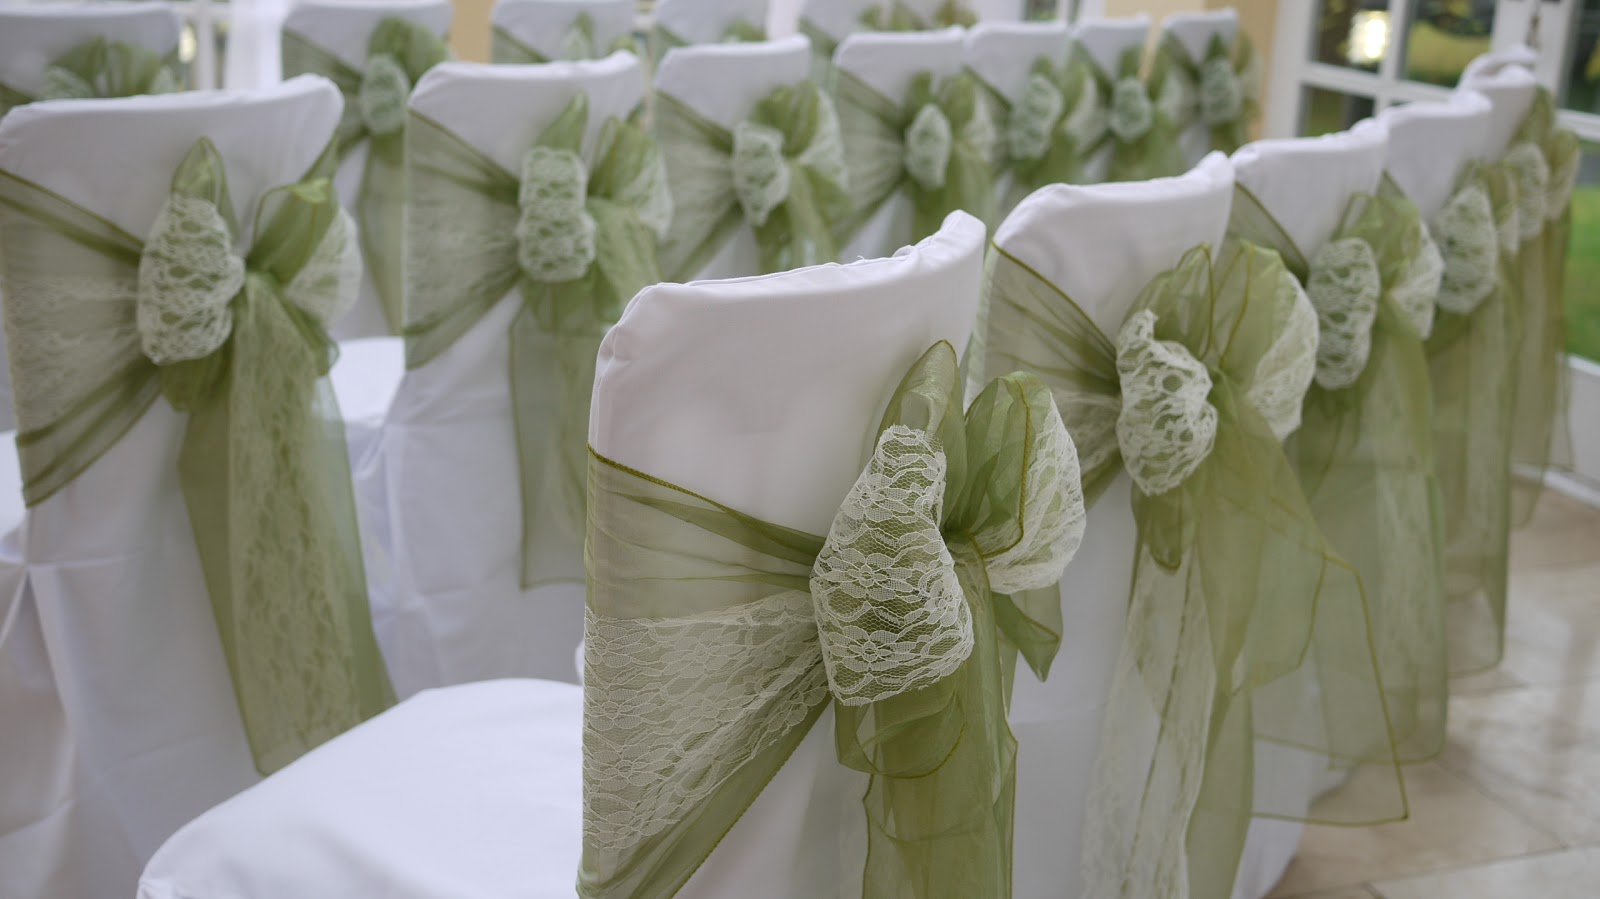 Wedding Chair Covers For Smart Electric Wheelchair Simply Bows And Autumn Inspiration